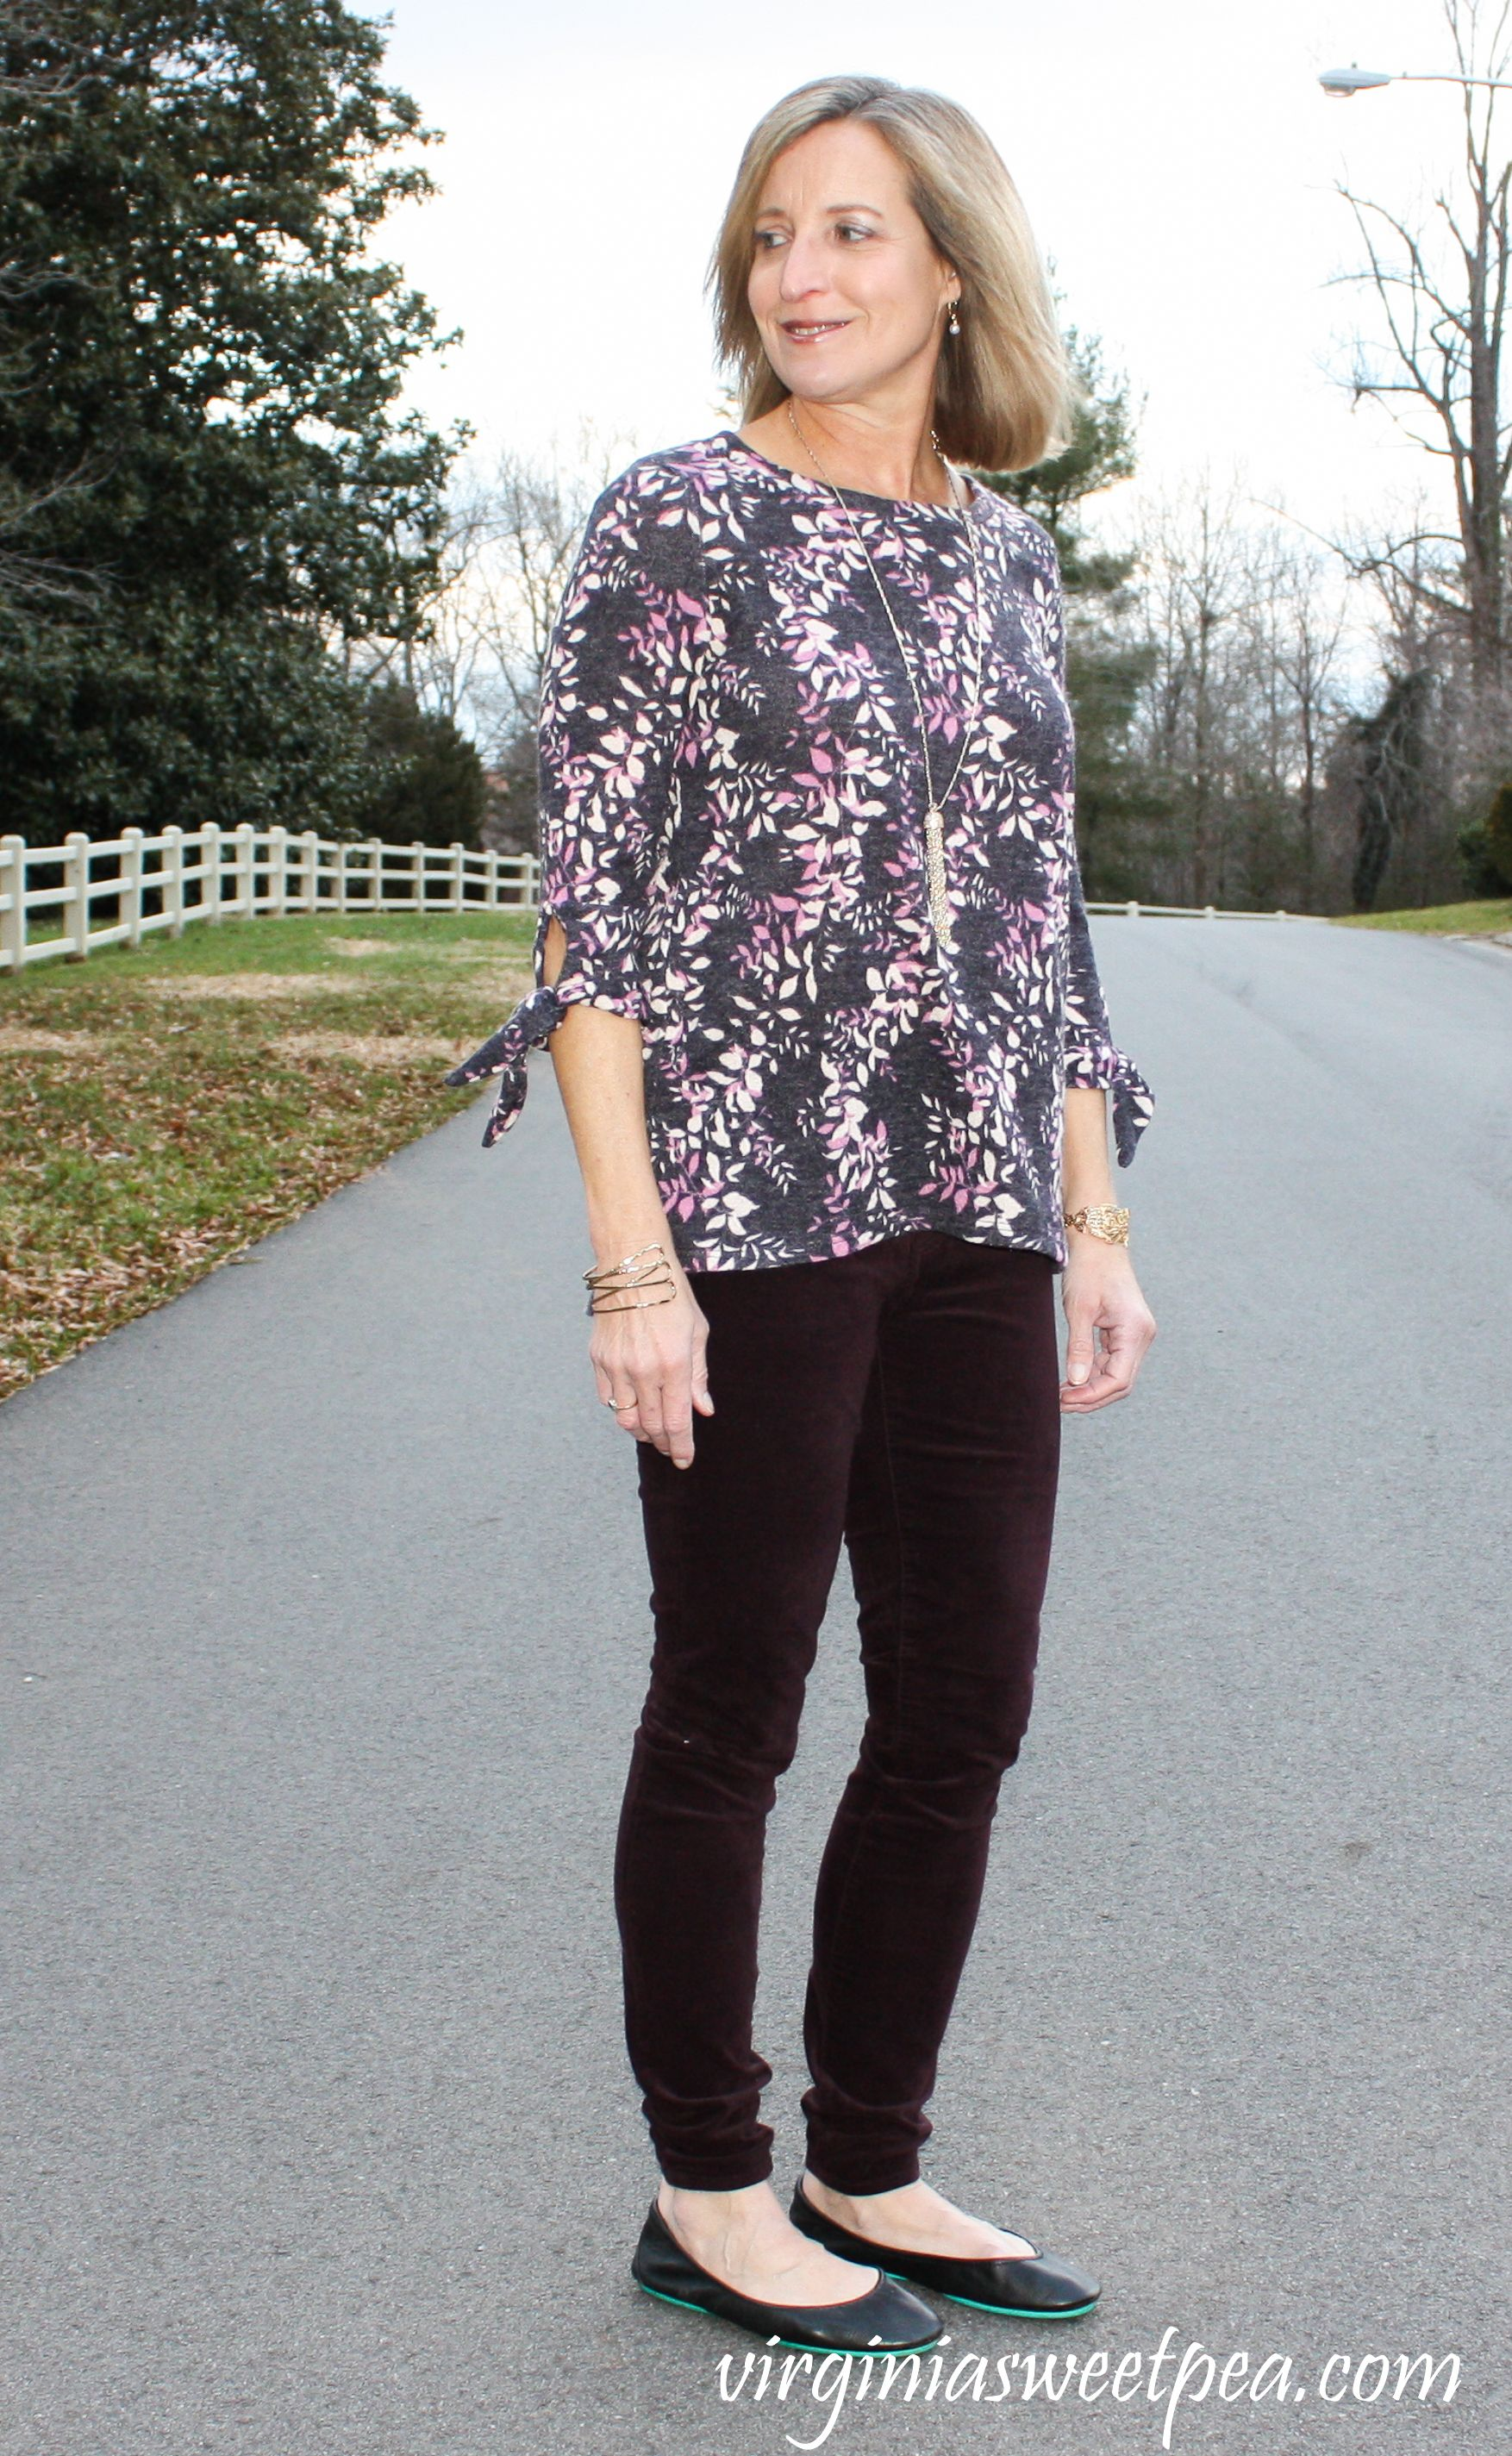 52551bb99e0b Stitch Fix Review for January 2019 - Kut From the Kloth Krissy Velveteen  Skinny Pant with Kaileigh Natia Tie Sleeve Brushed Knit Top